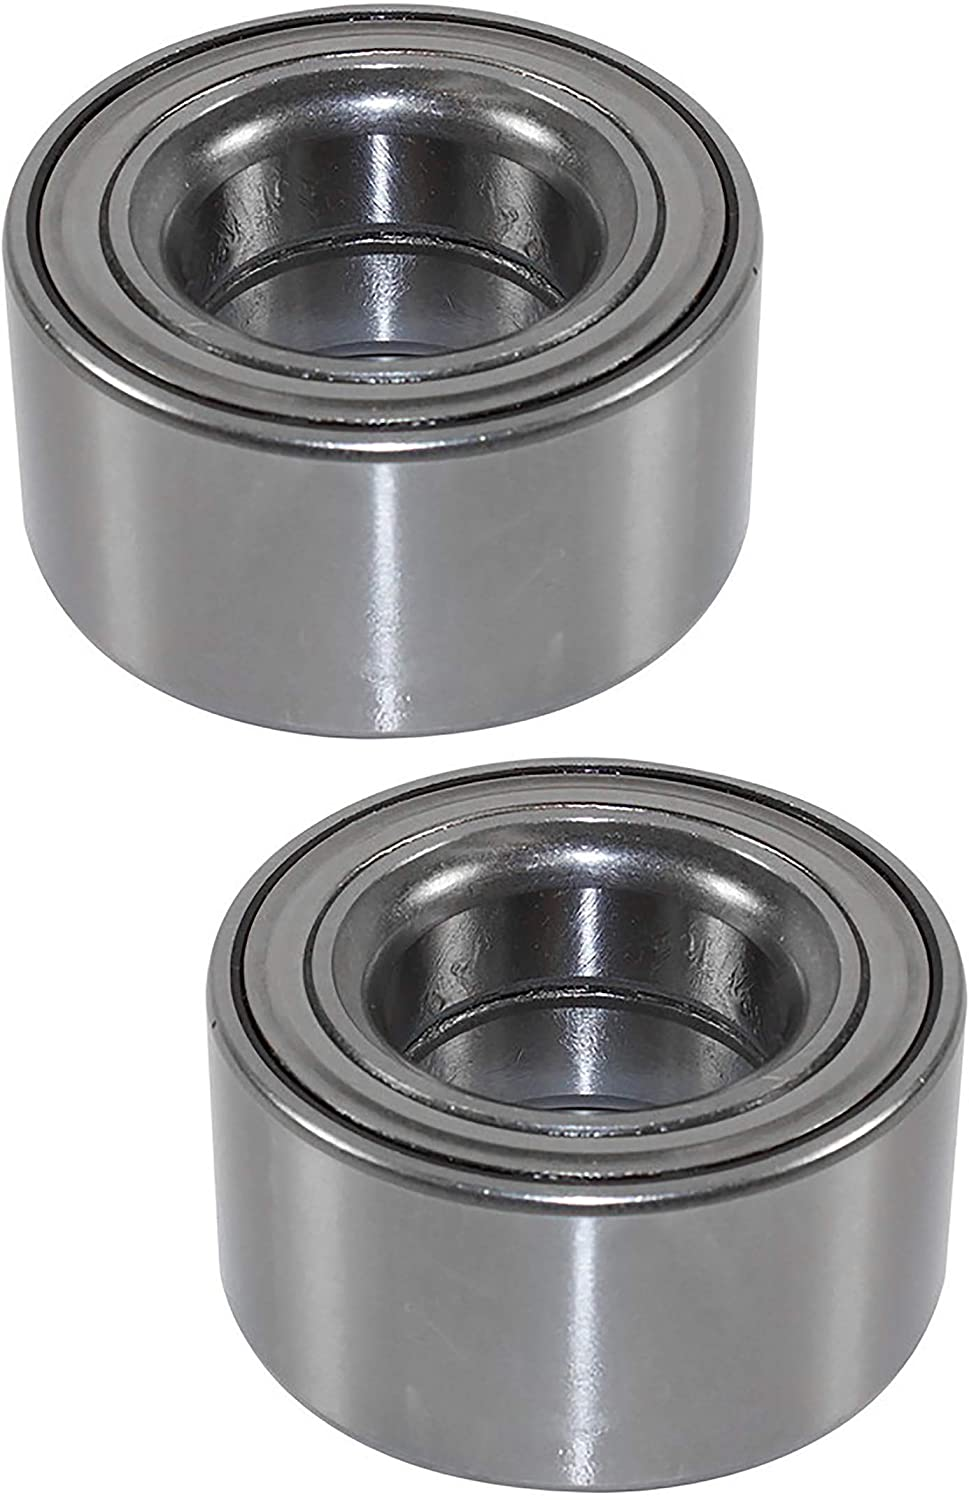 Wheel Bearing Front Set of 2 Compatible With Jaguar 2002 2003 2004 2005 2006 2007 2008 X-Type